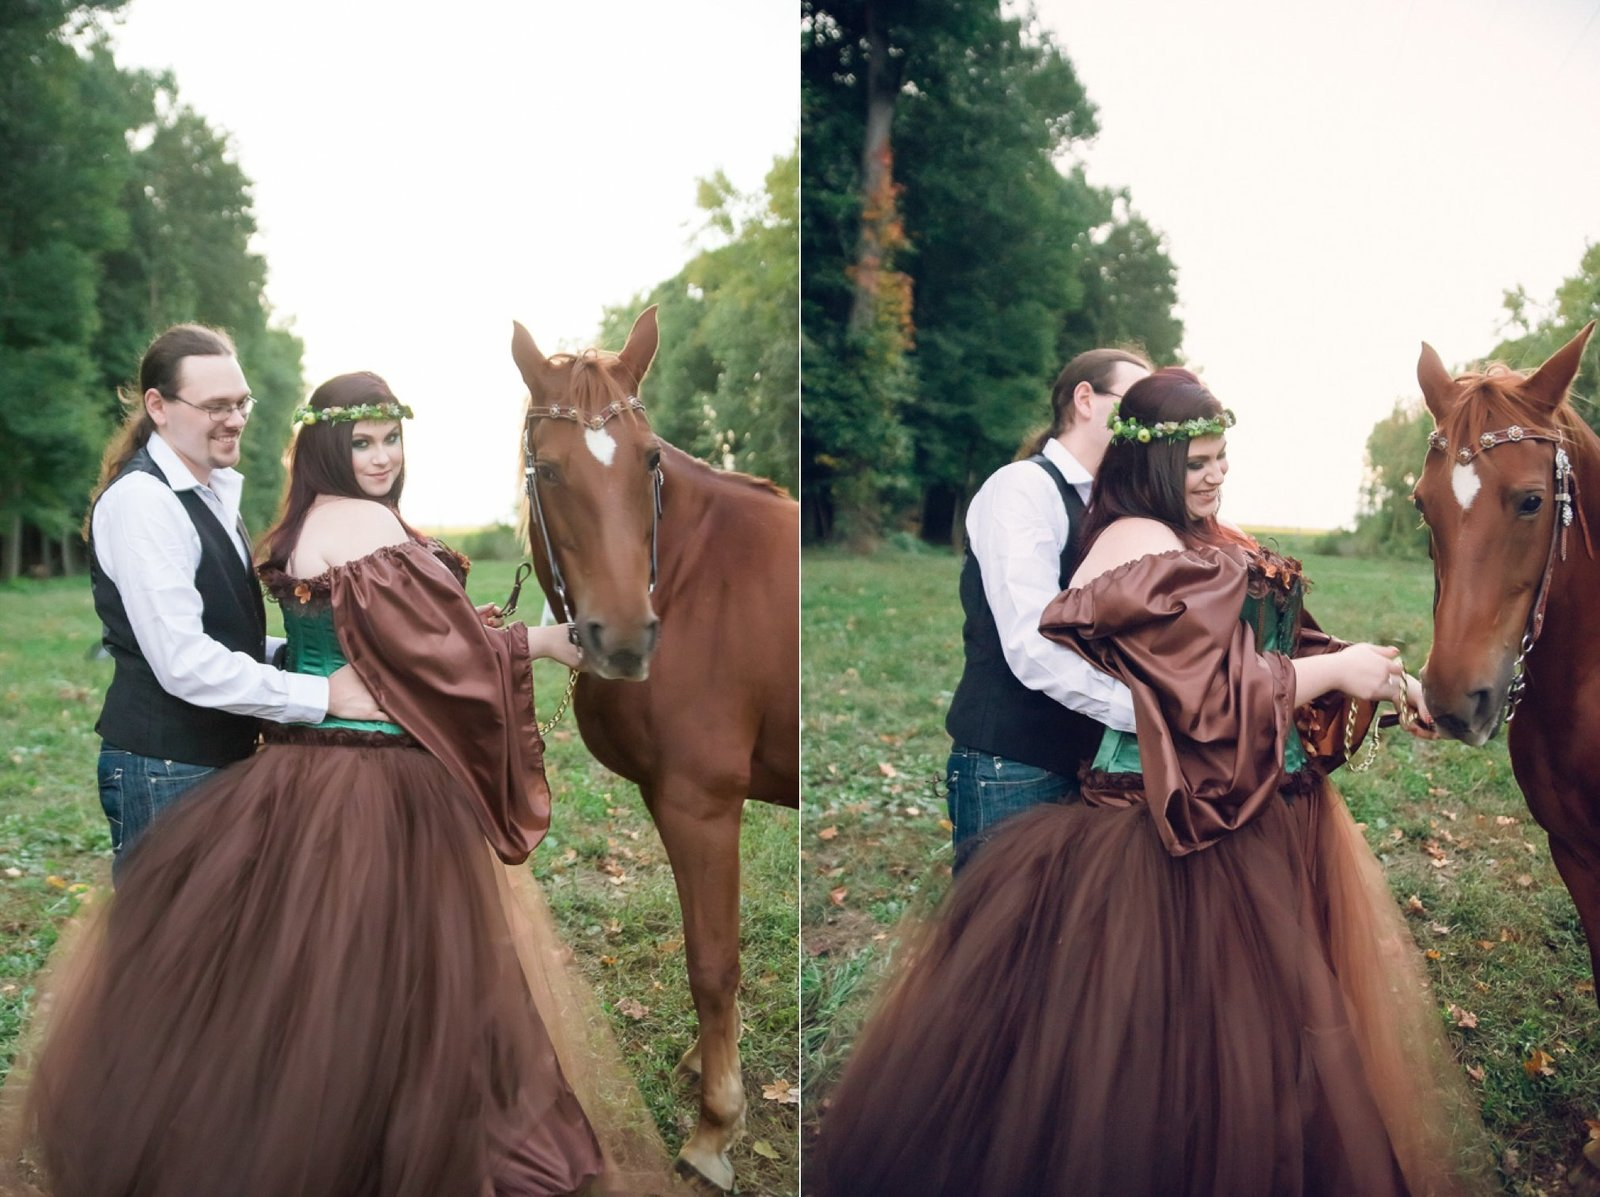 Horse_Farm_Engagement_shoot_new_jersey_wedding_Photography005